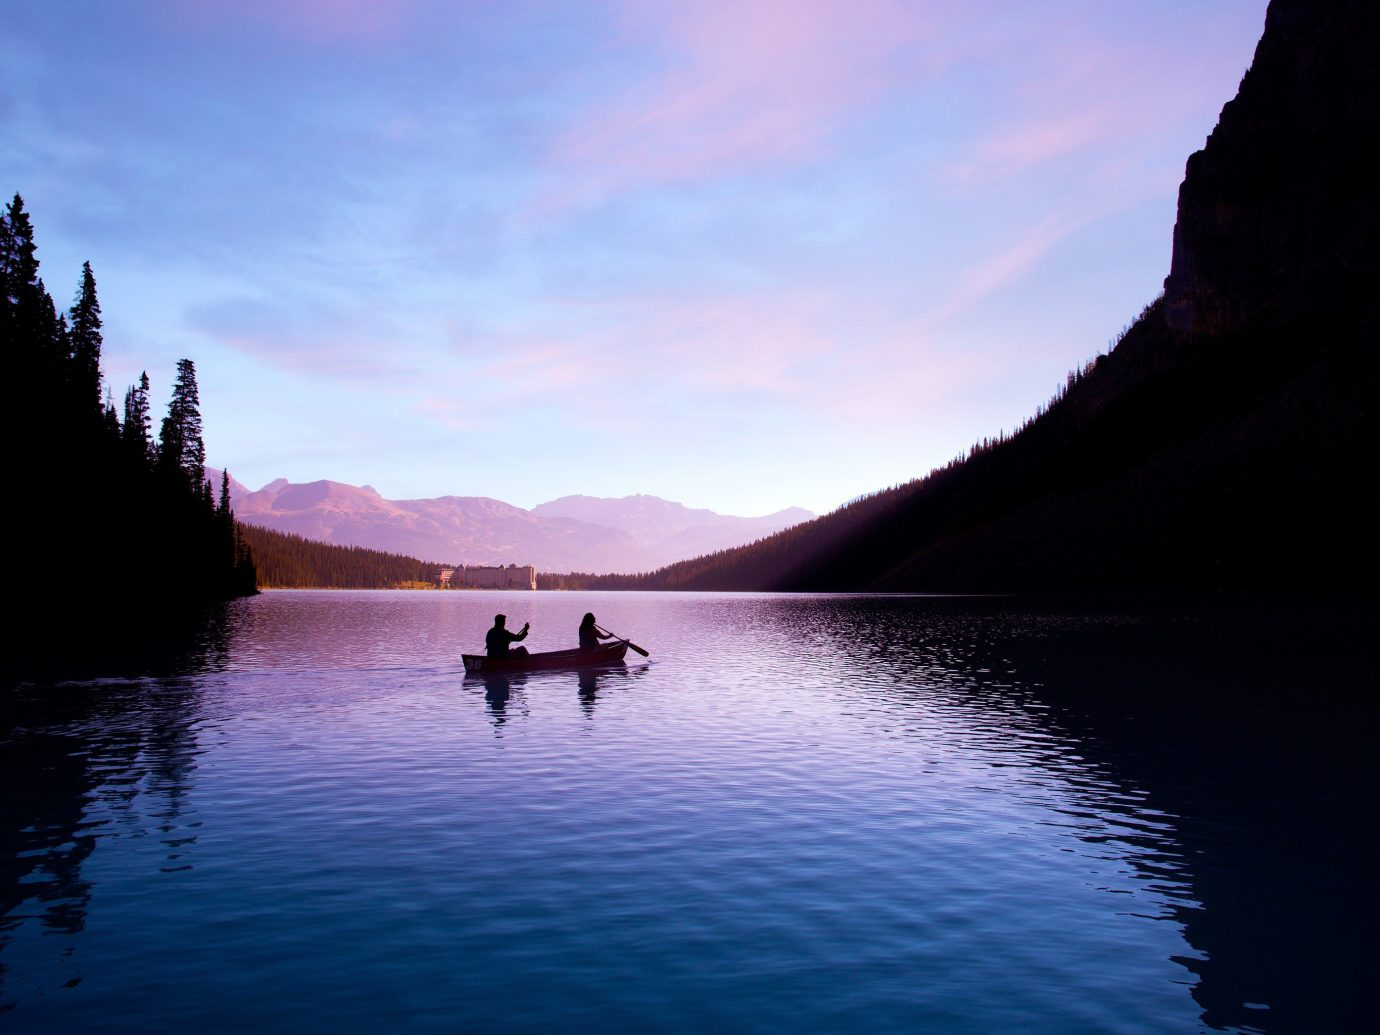 Trip Ideas water sky outdoor Boat reflection Lake body of water mountain River loch morning dusk Nature Sea dawn evening fjord Sunset bay surrounded clouds distance